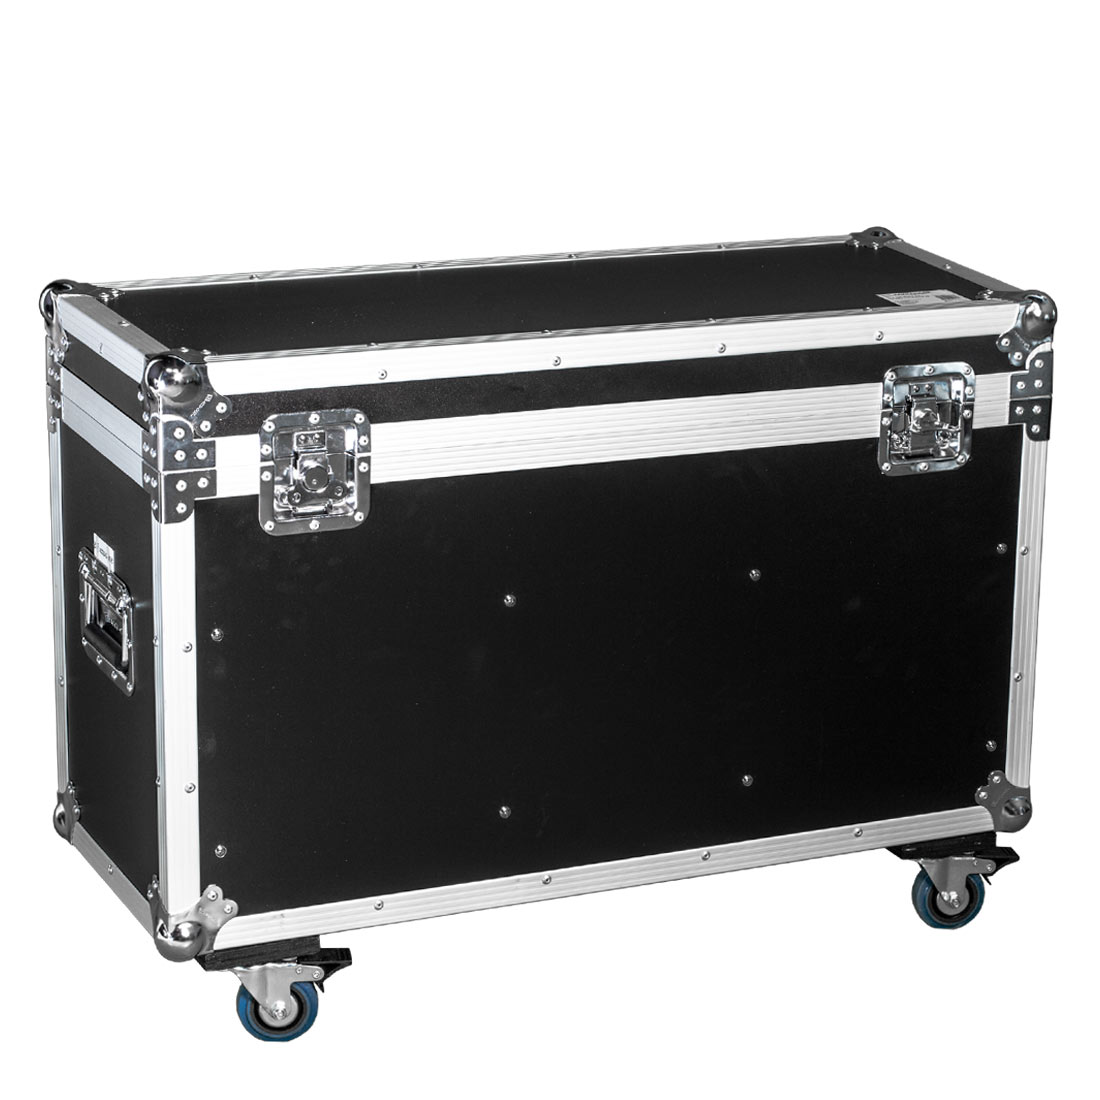 ACF-SW/Duo Case for ADJ Vizi Hybrid 2R